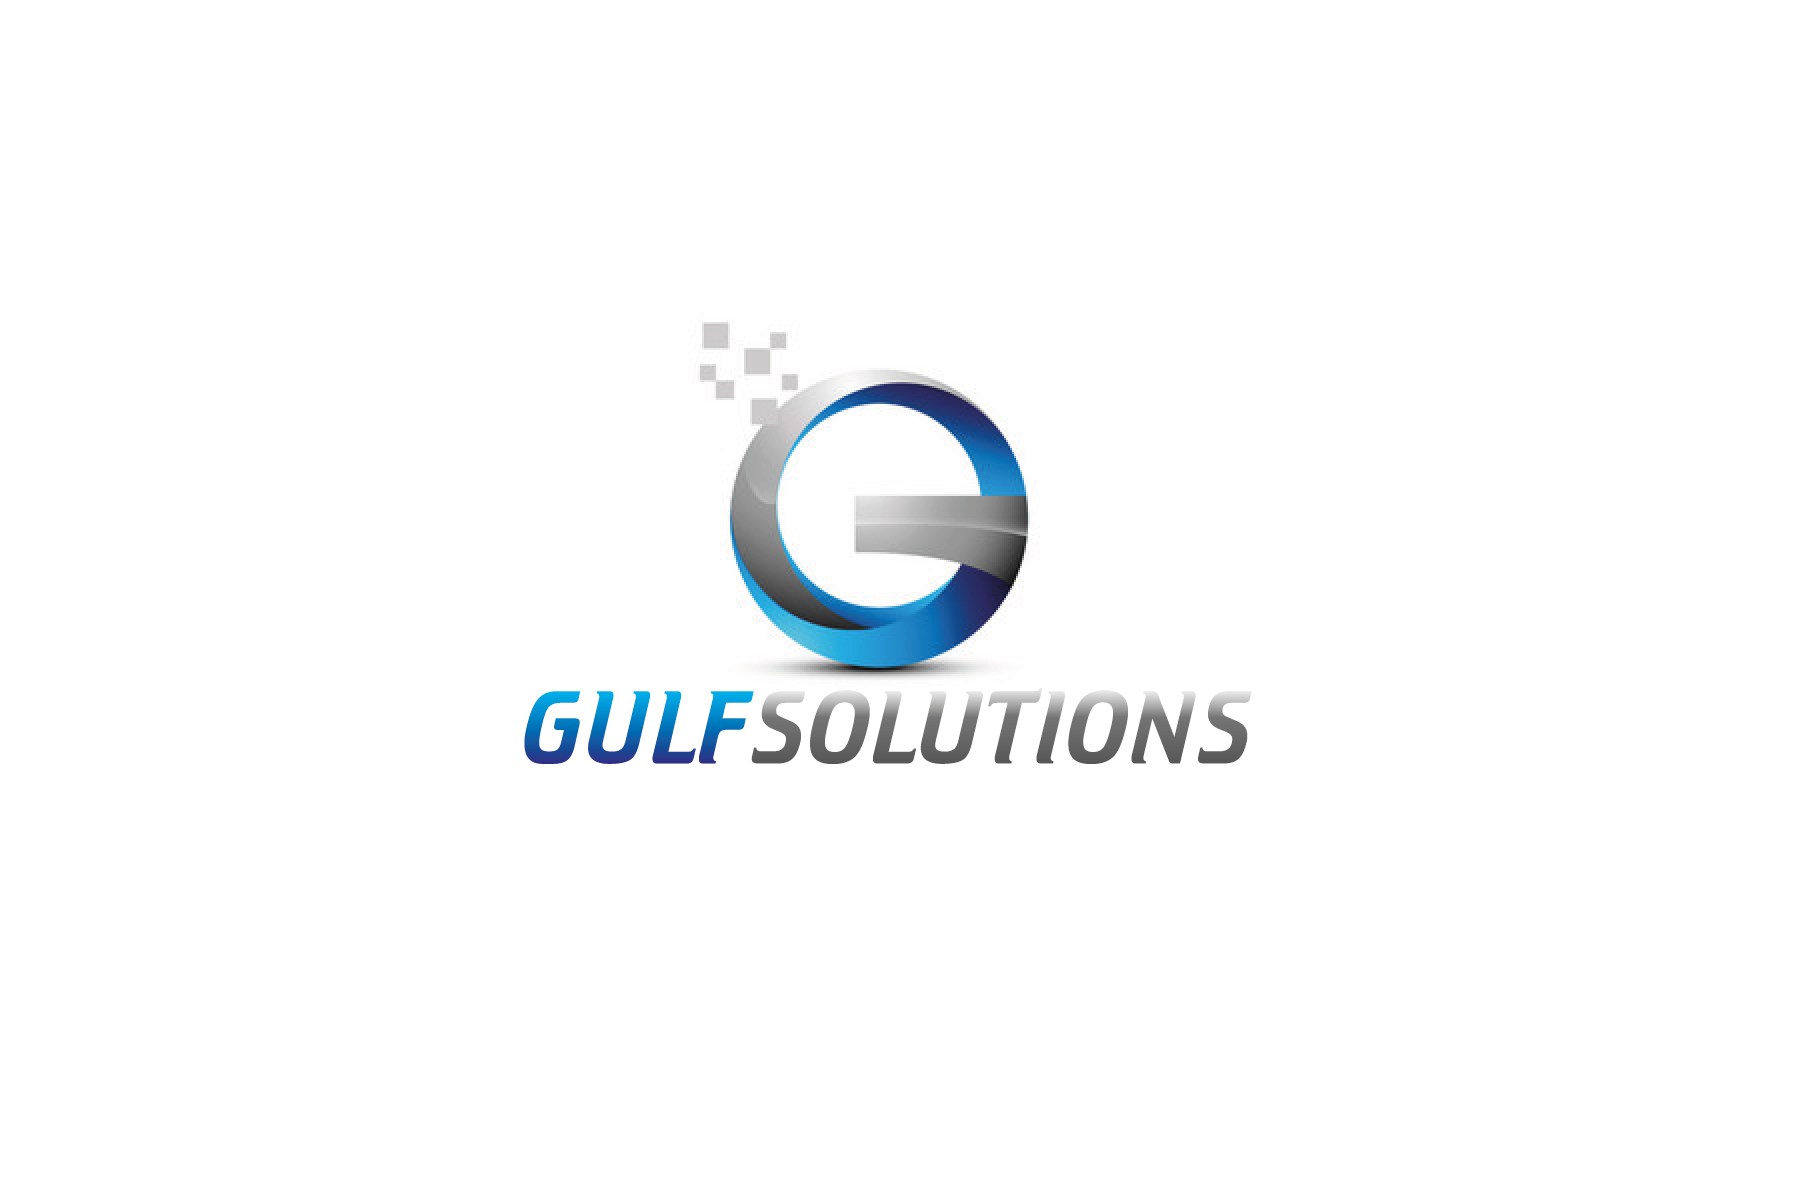 Logo Design by Private User - Entry No. 17 in the Logo Design Contest New Logo Design for Gulf solutions company.